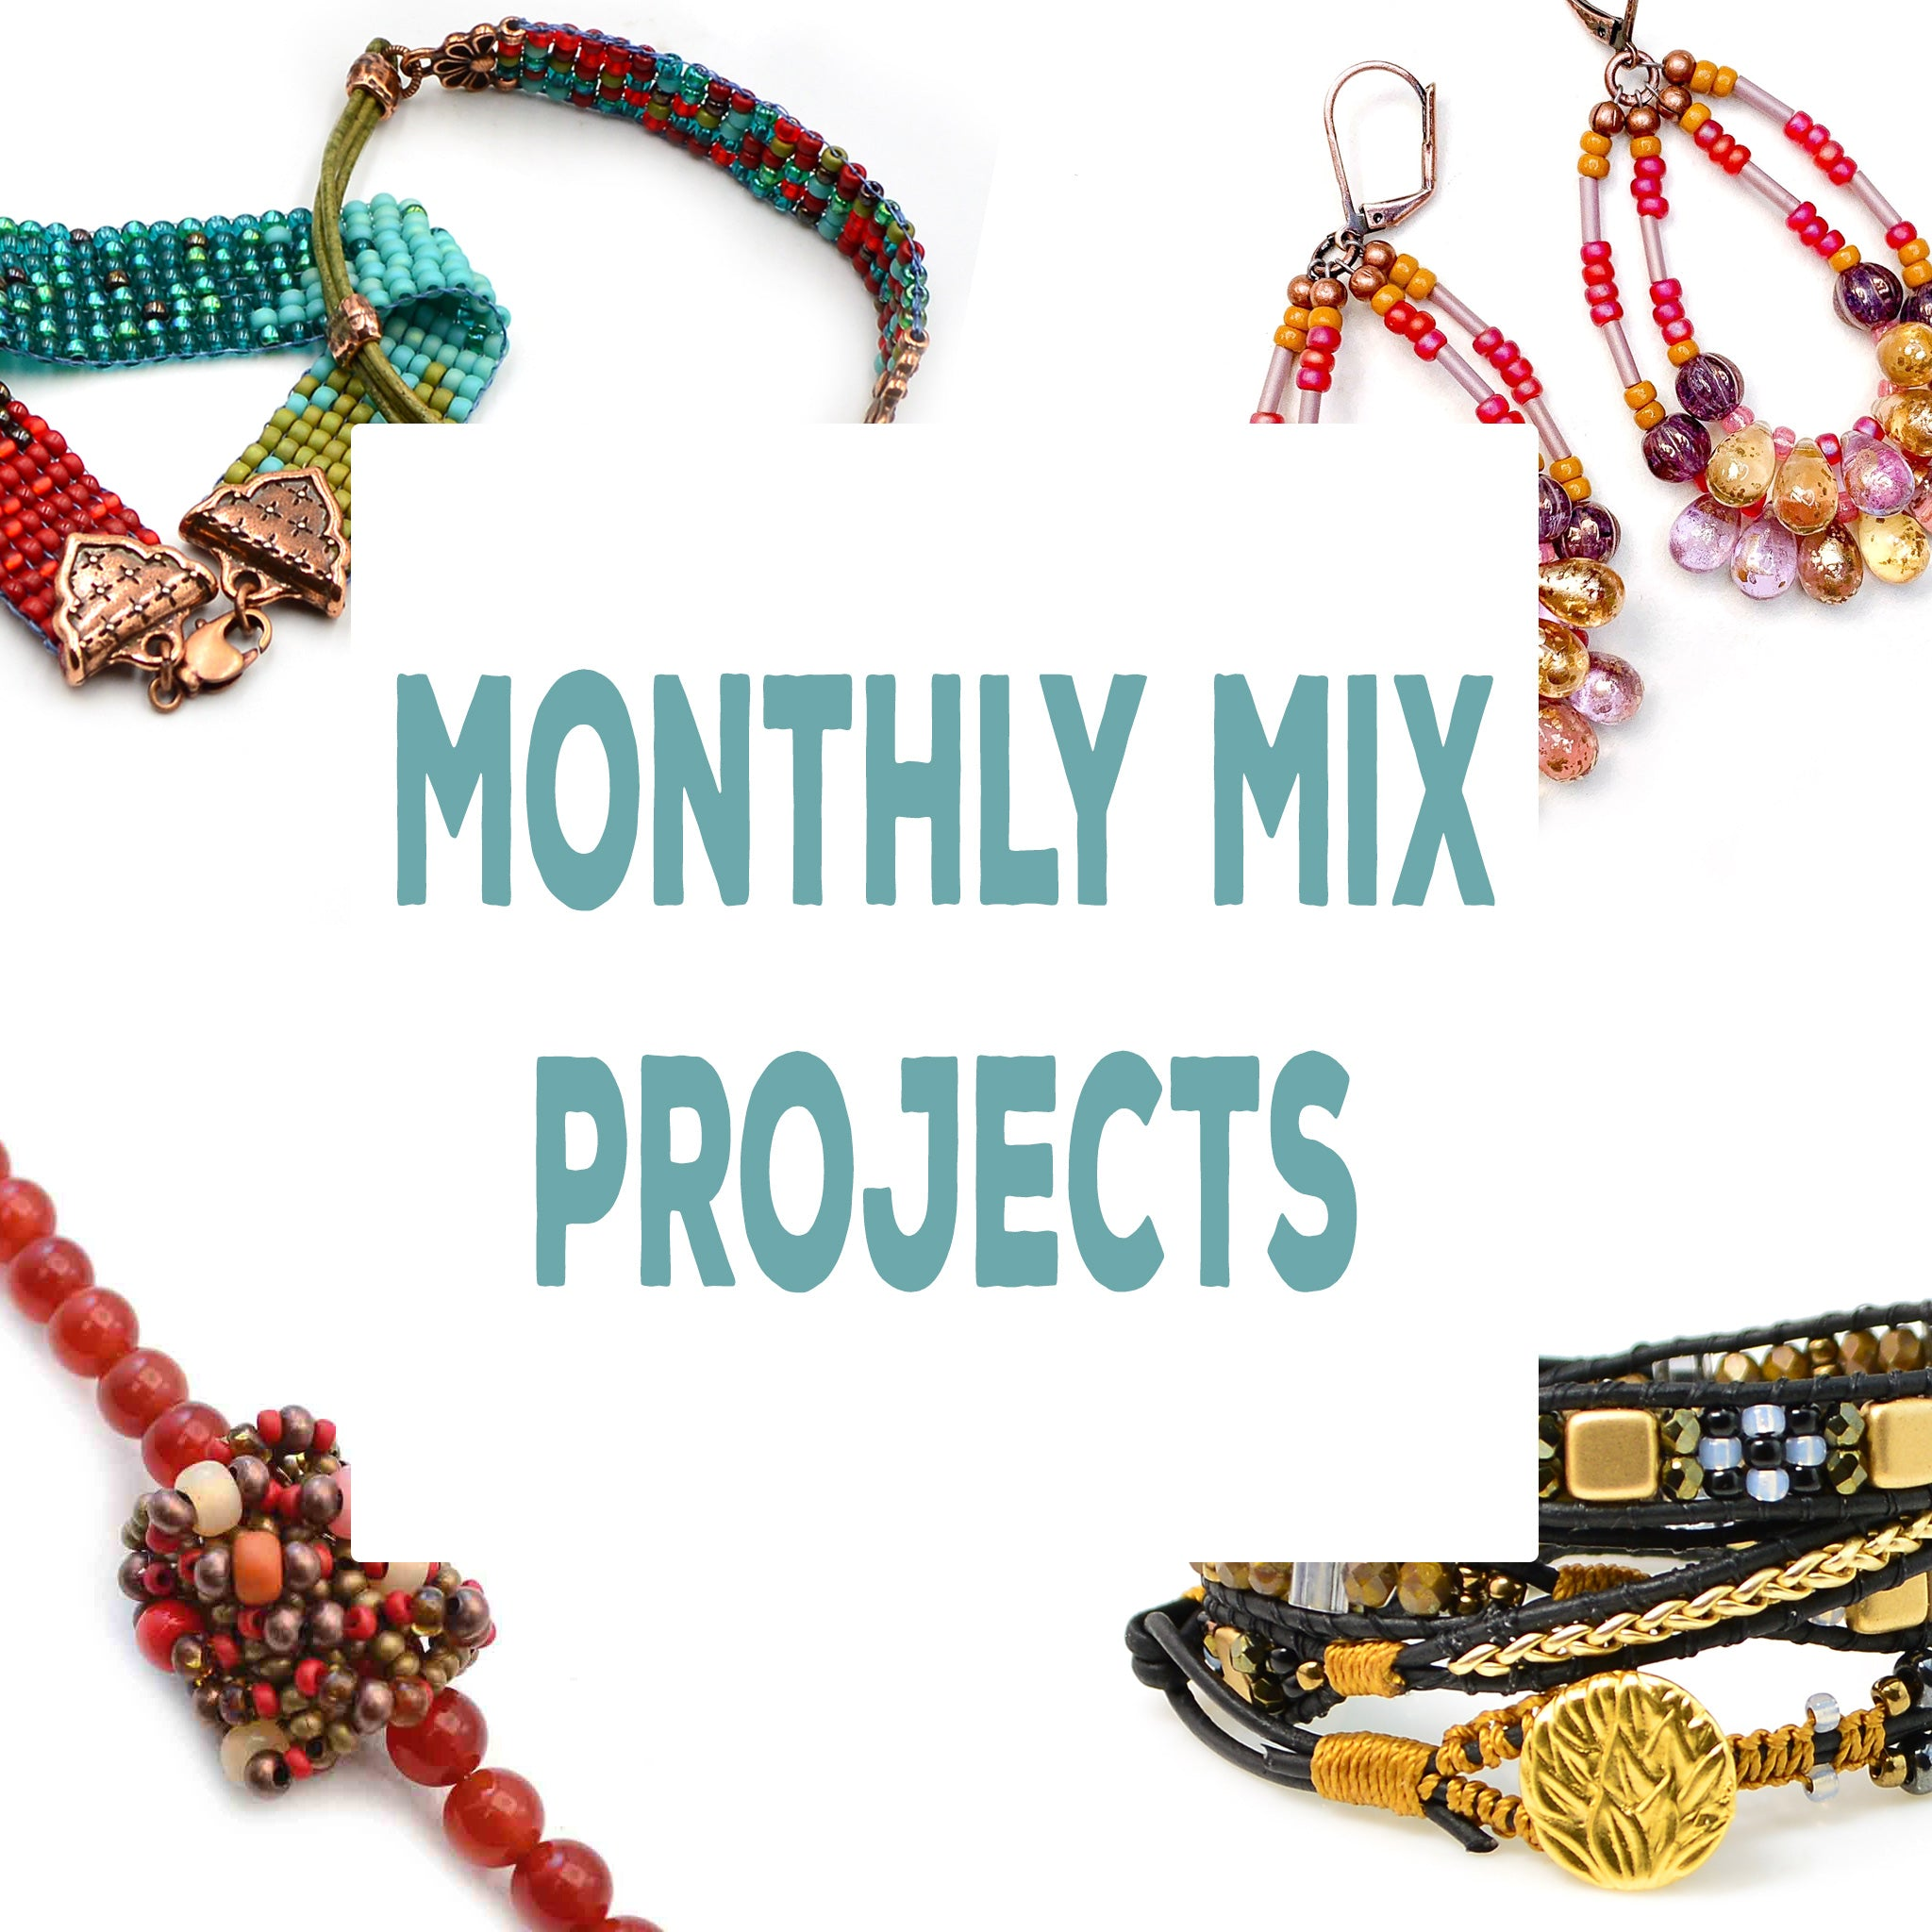 Monthly Mix Projects